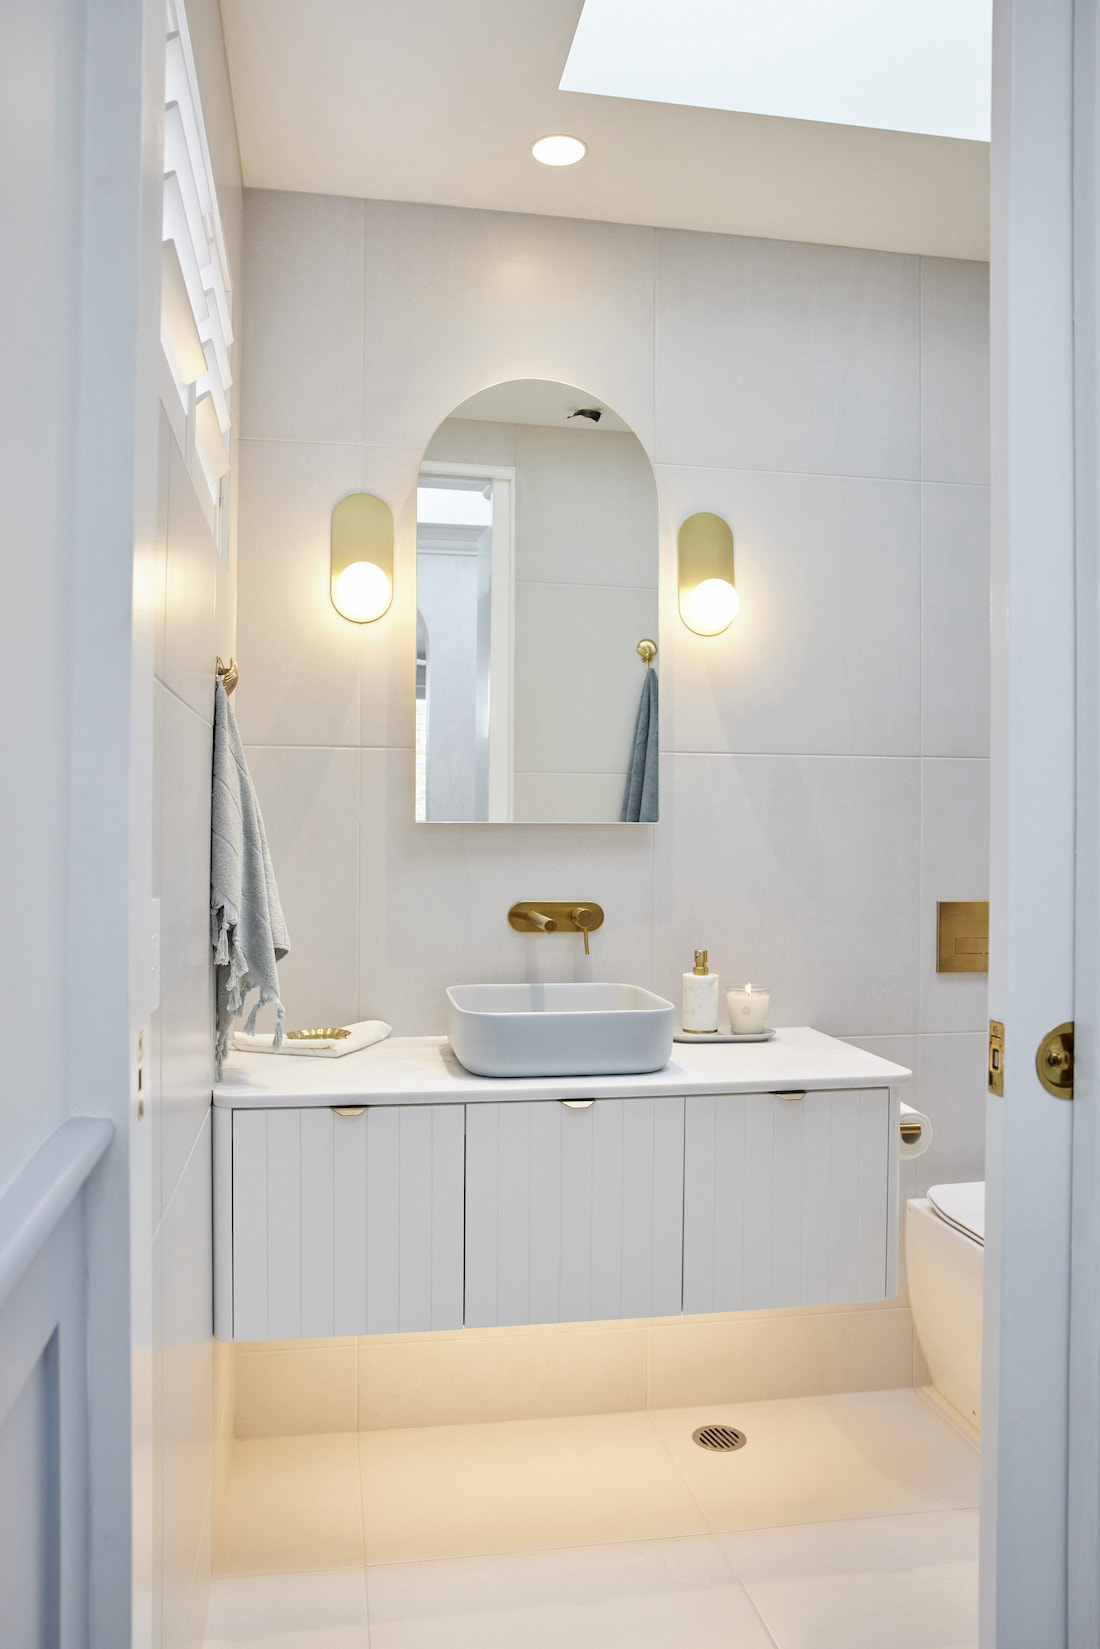 White bathroom with blue sink and arch mirror